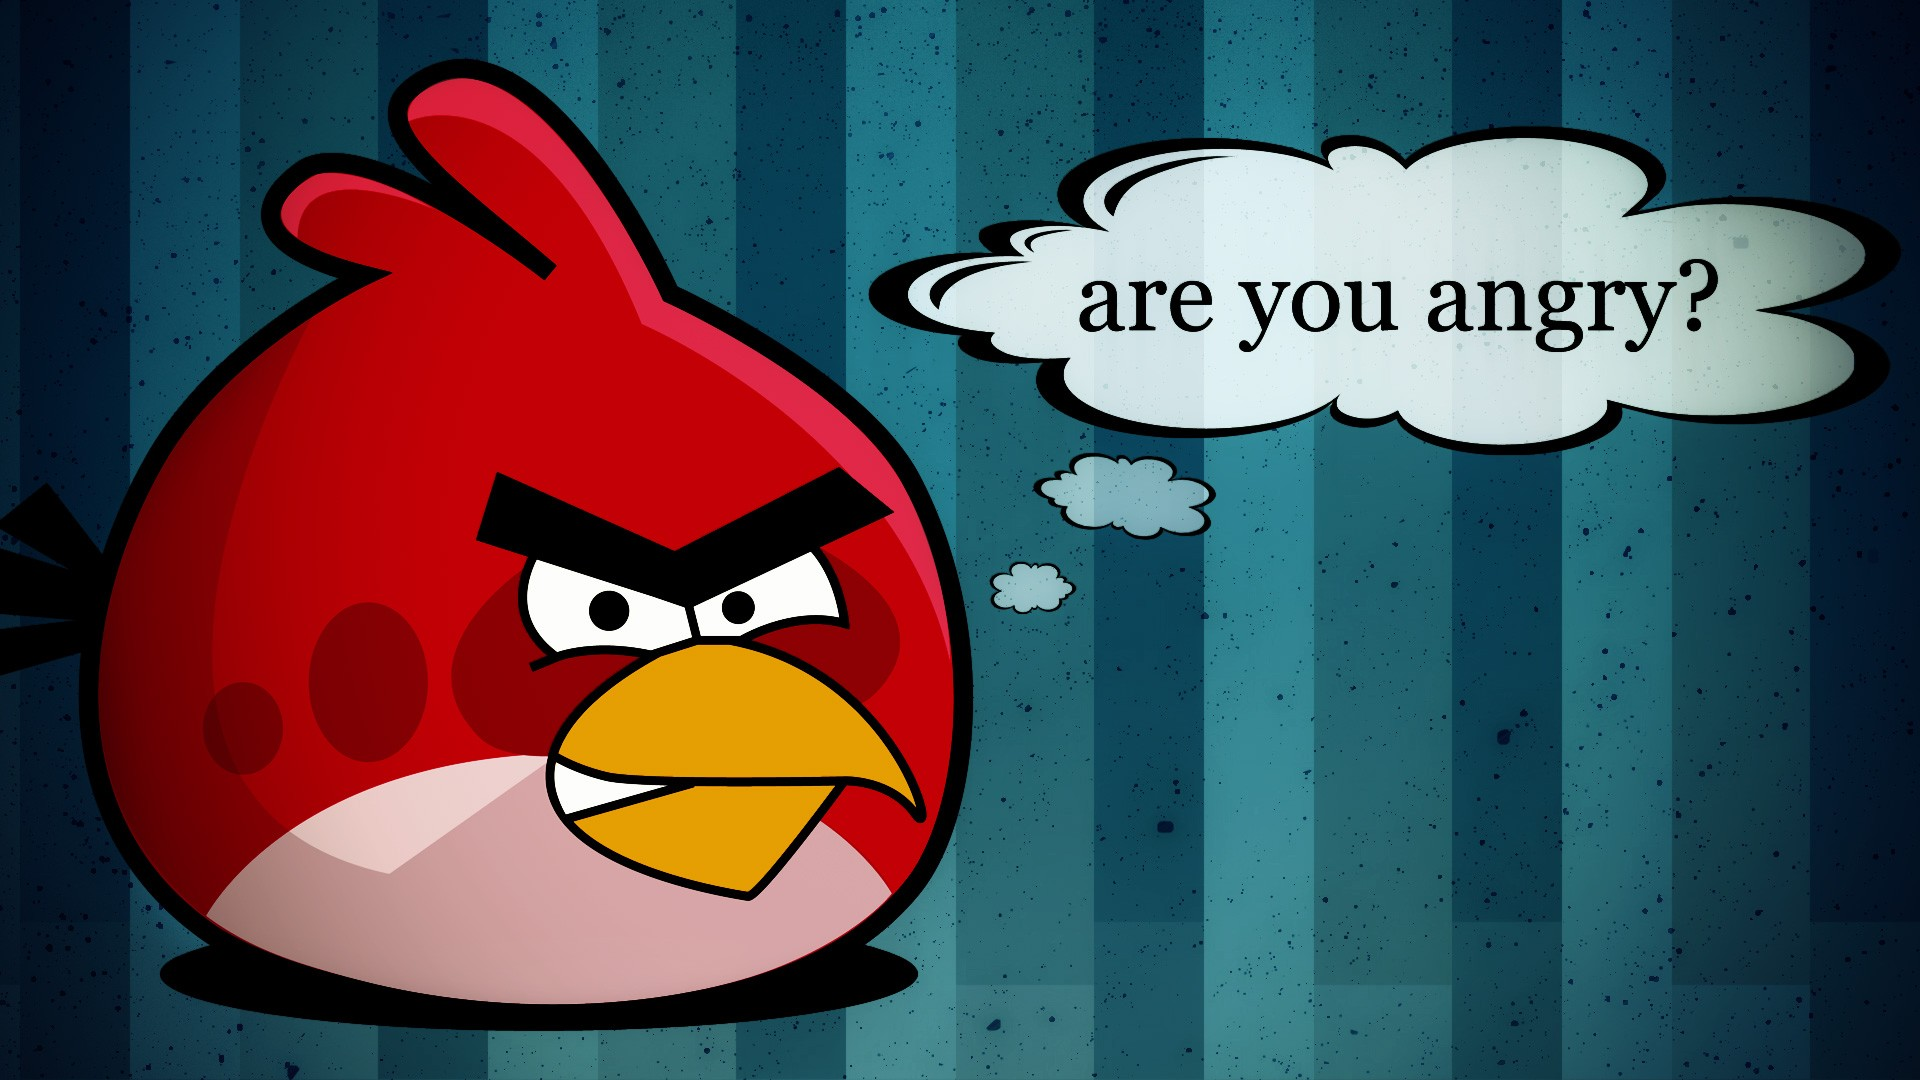 Angry birds space hd desktop wallpaper high definition 1920x1080 voltagebd Images